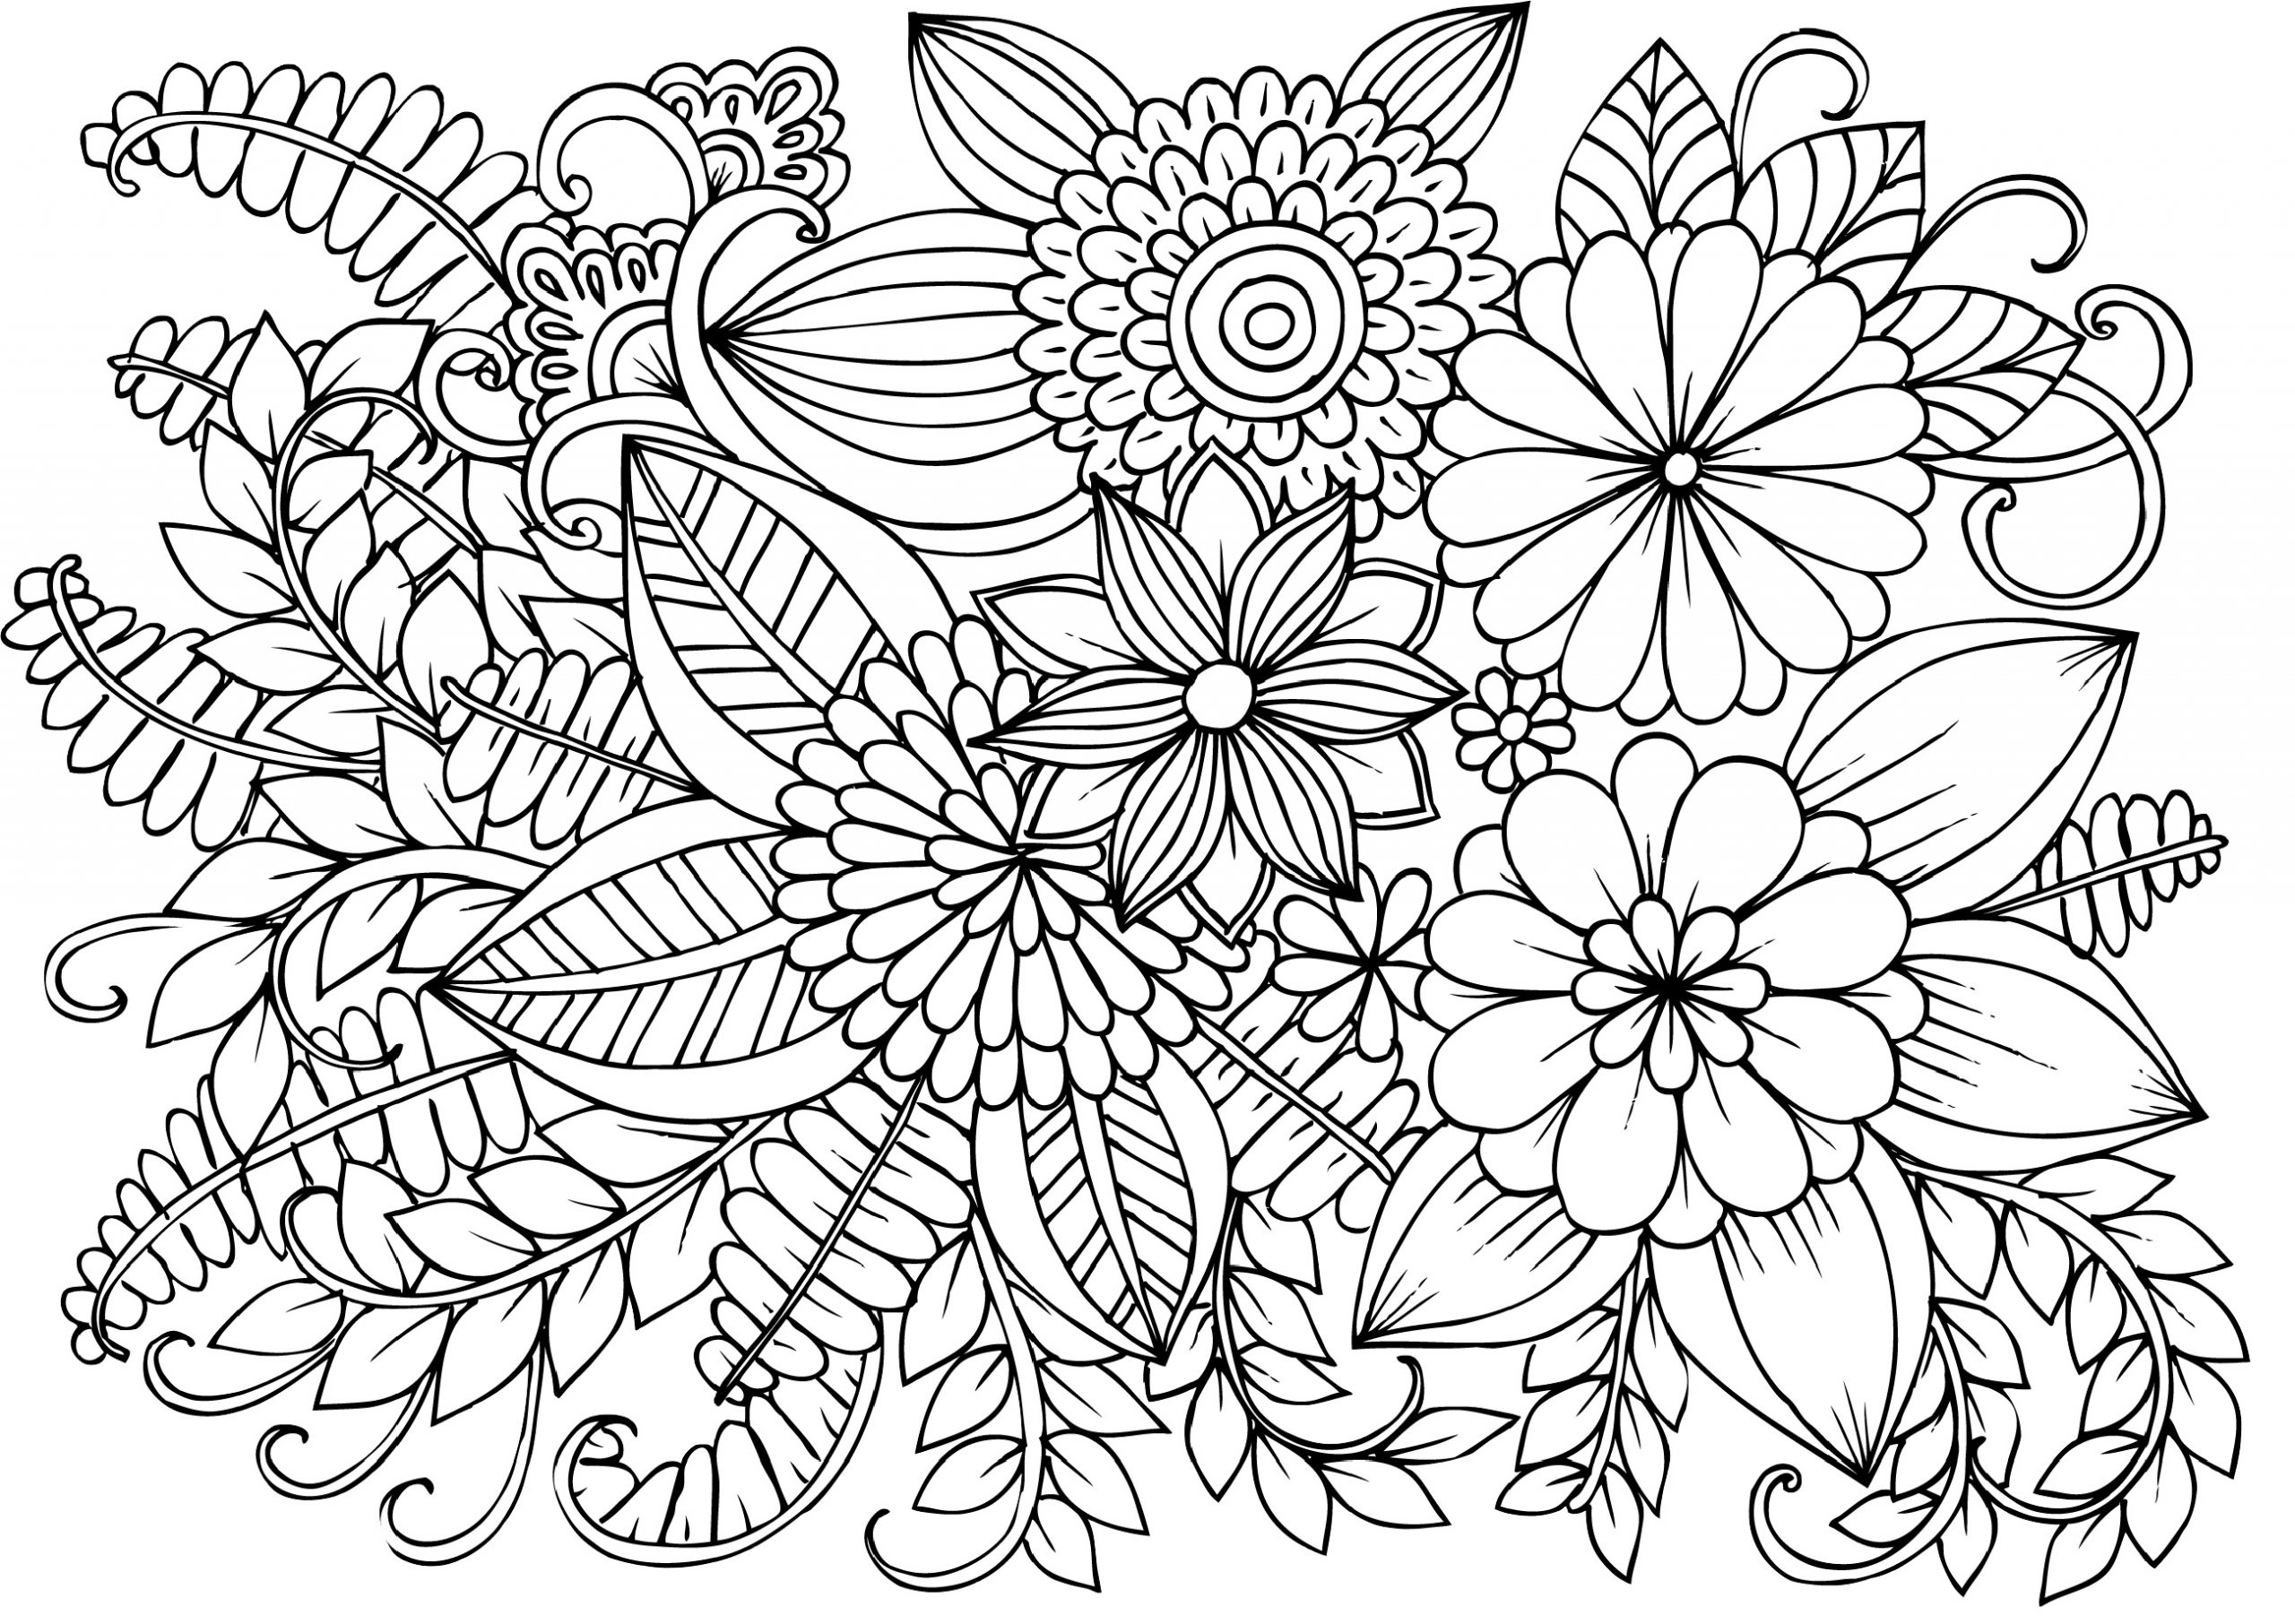 coloring pages for adults flowers flower coloring pages for adults best coloring pages for flowers adults coloring for pages